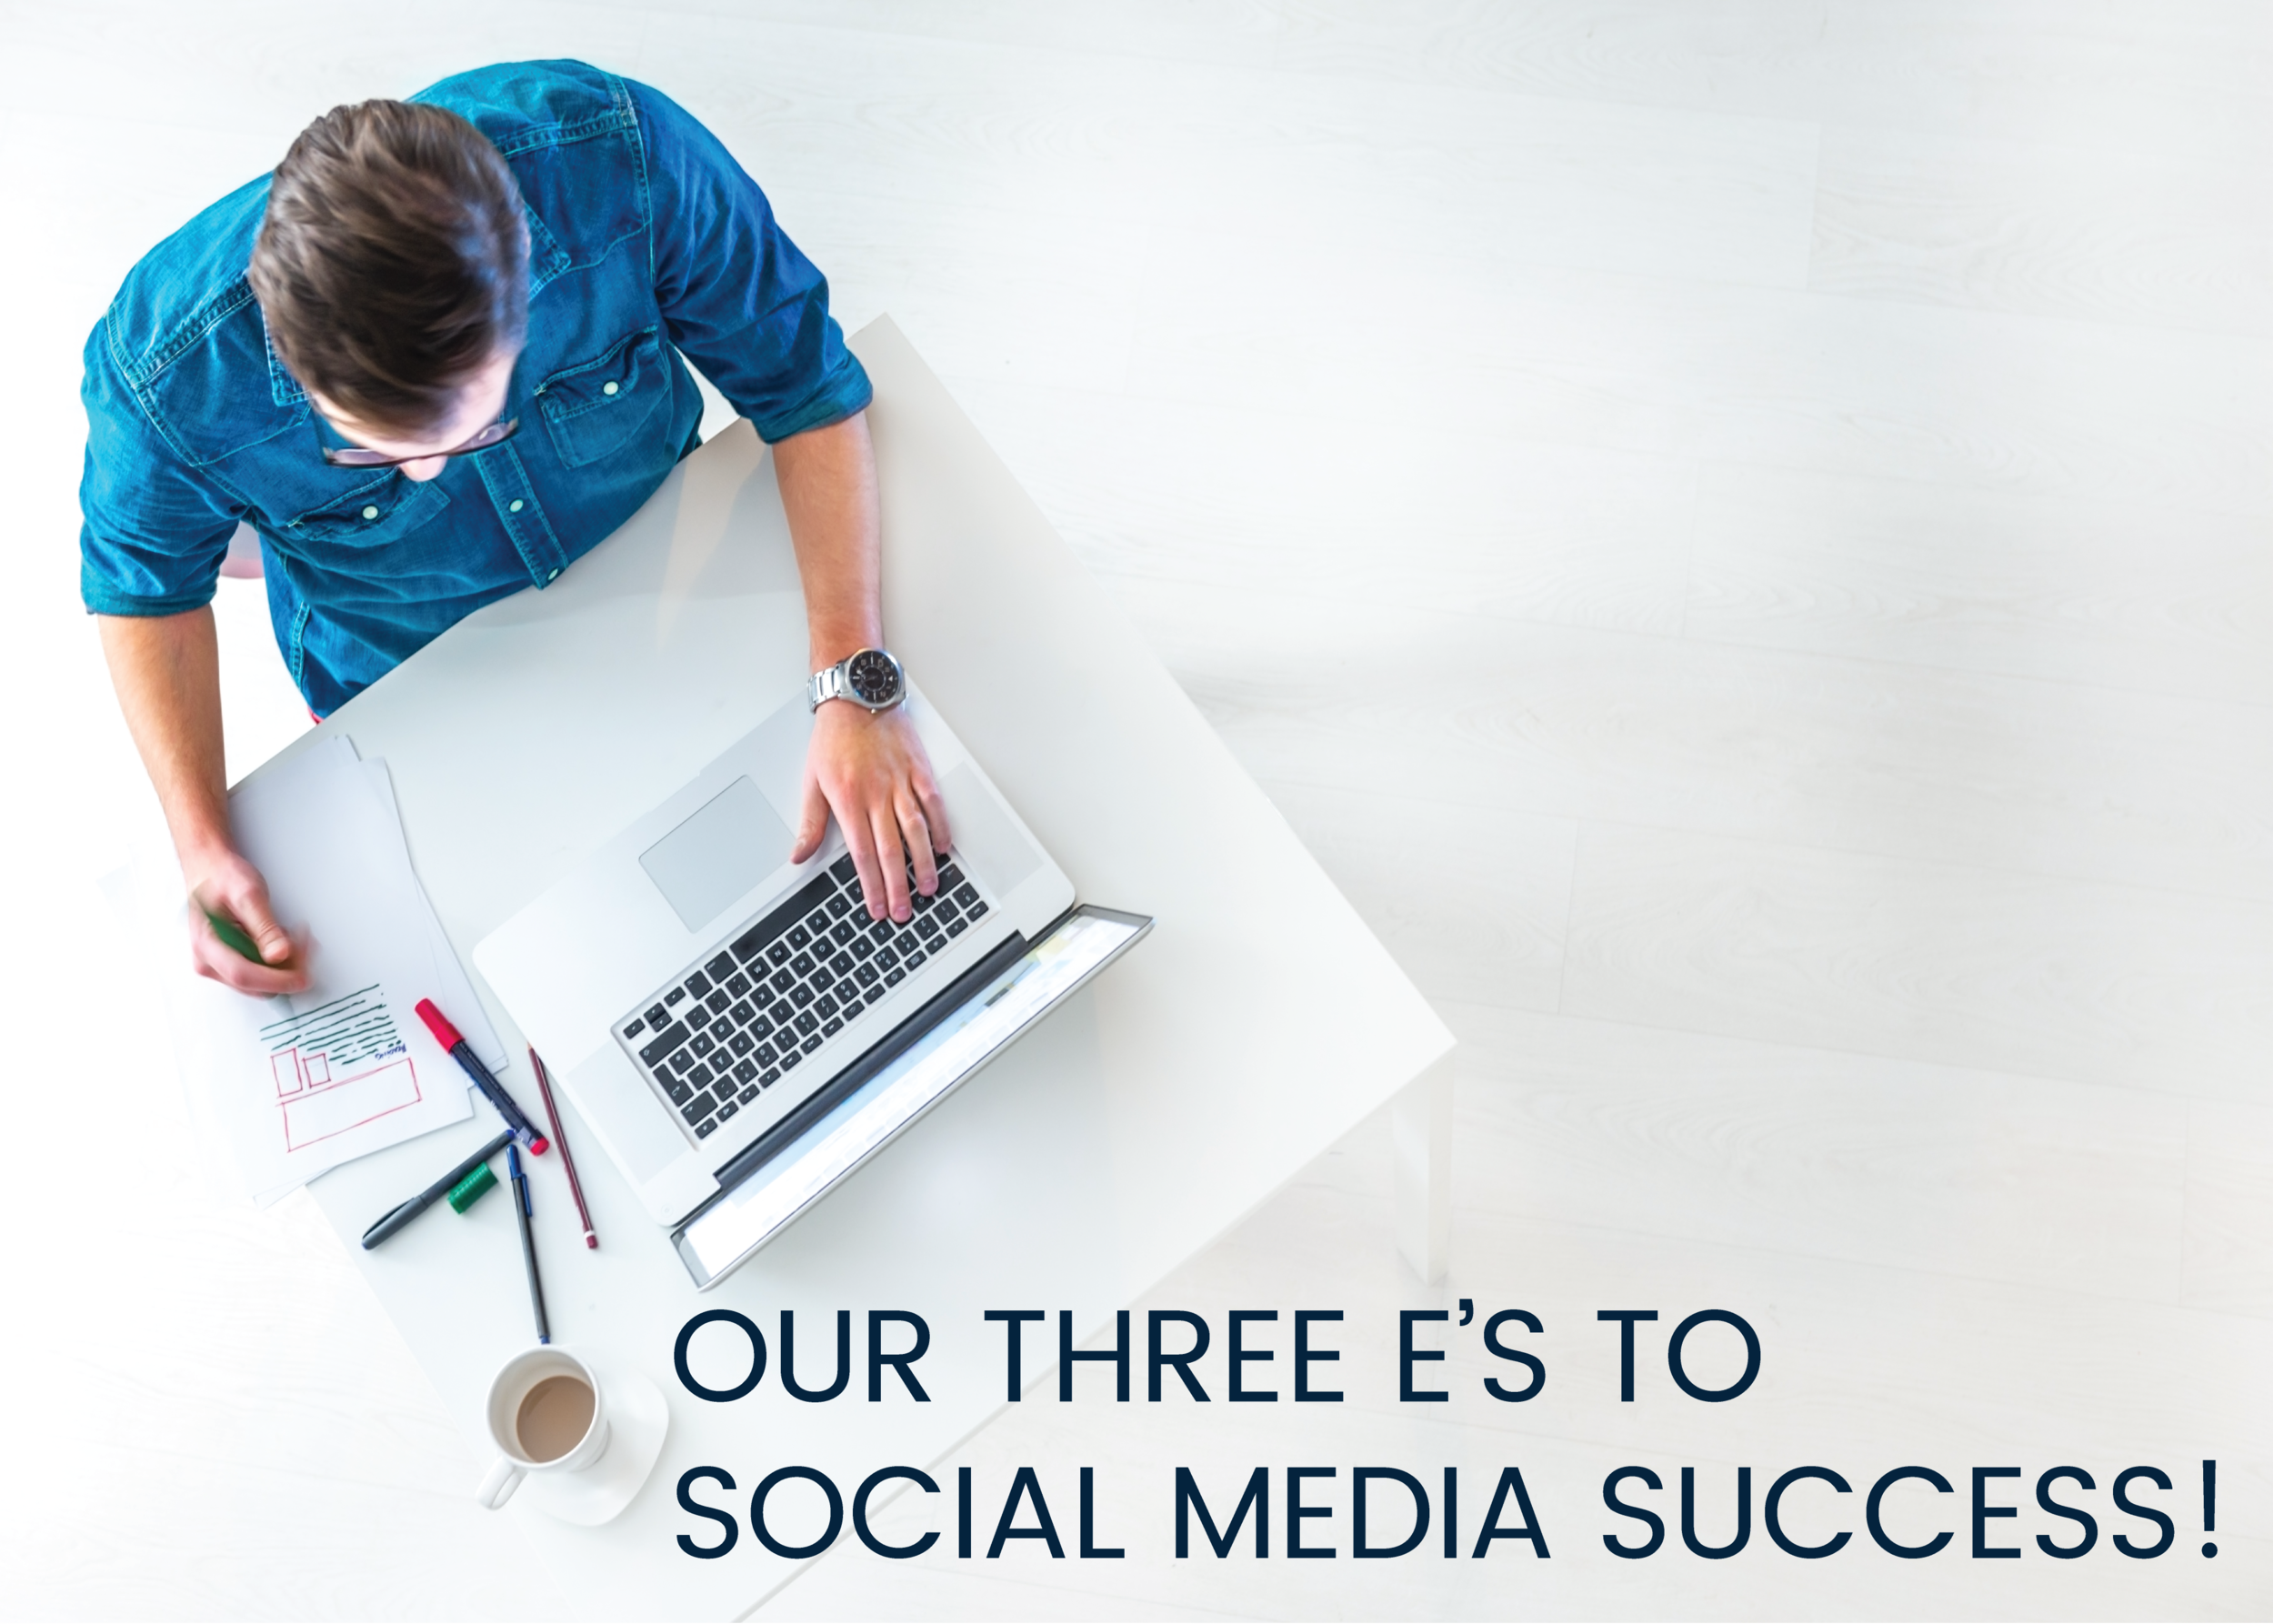 rules for social media success